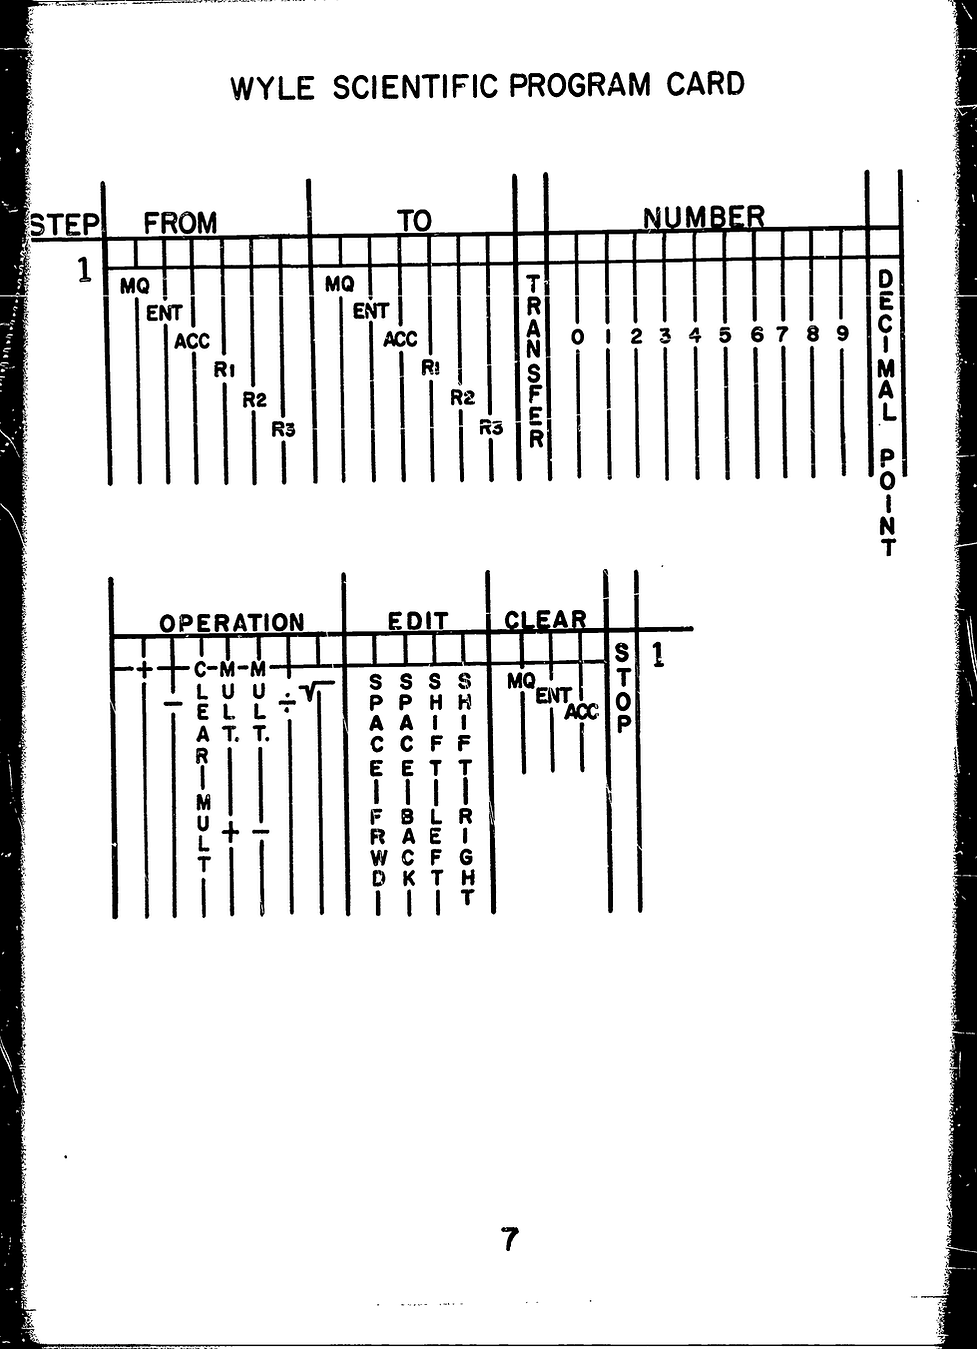 WYLE Instruction_Page_095_Image_0001.tif